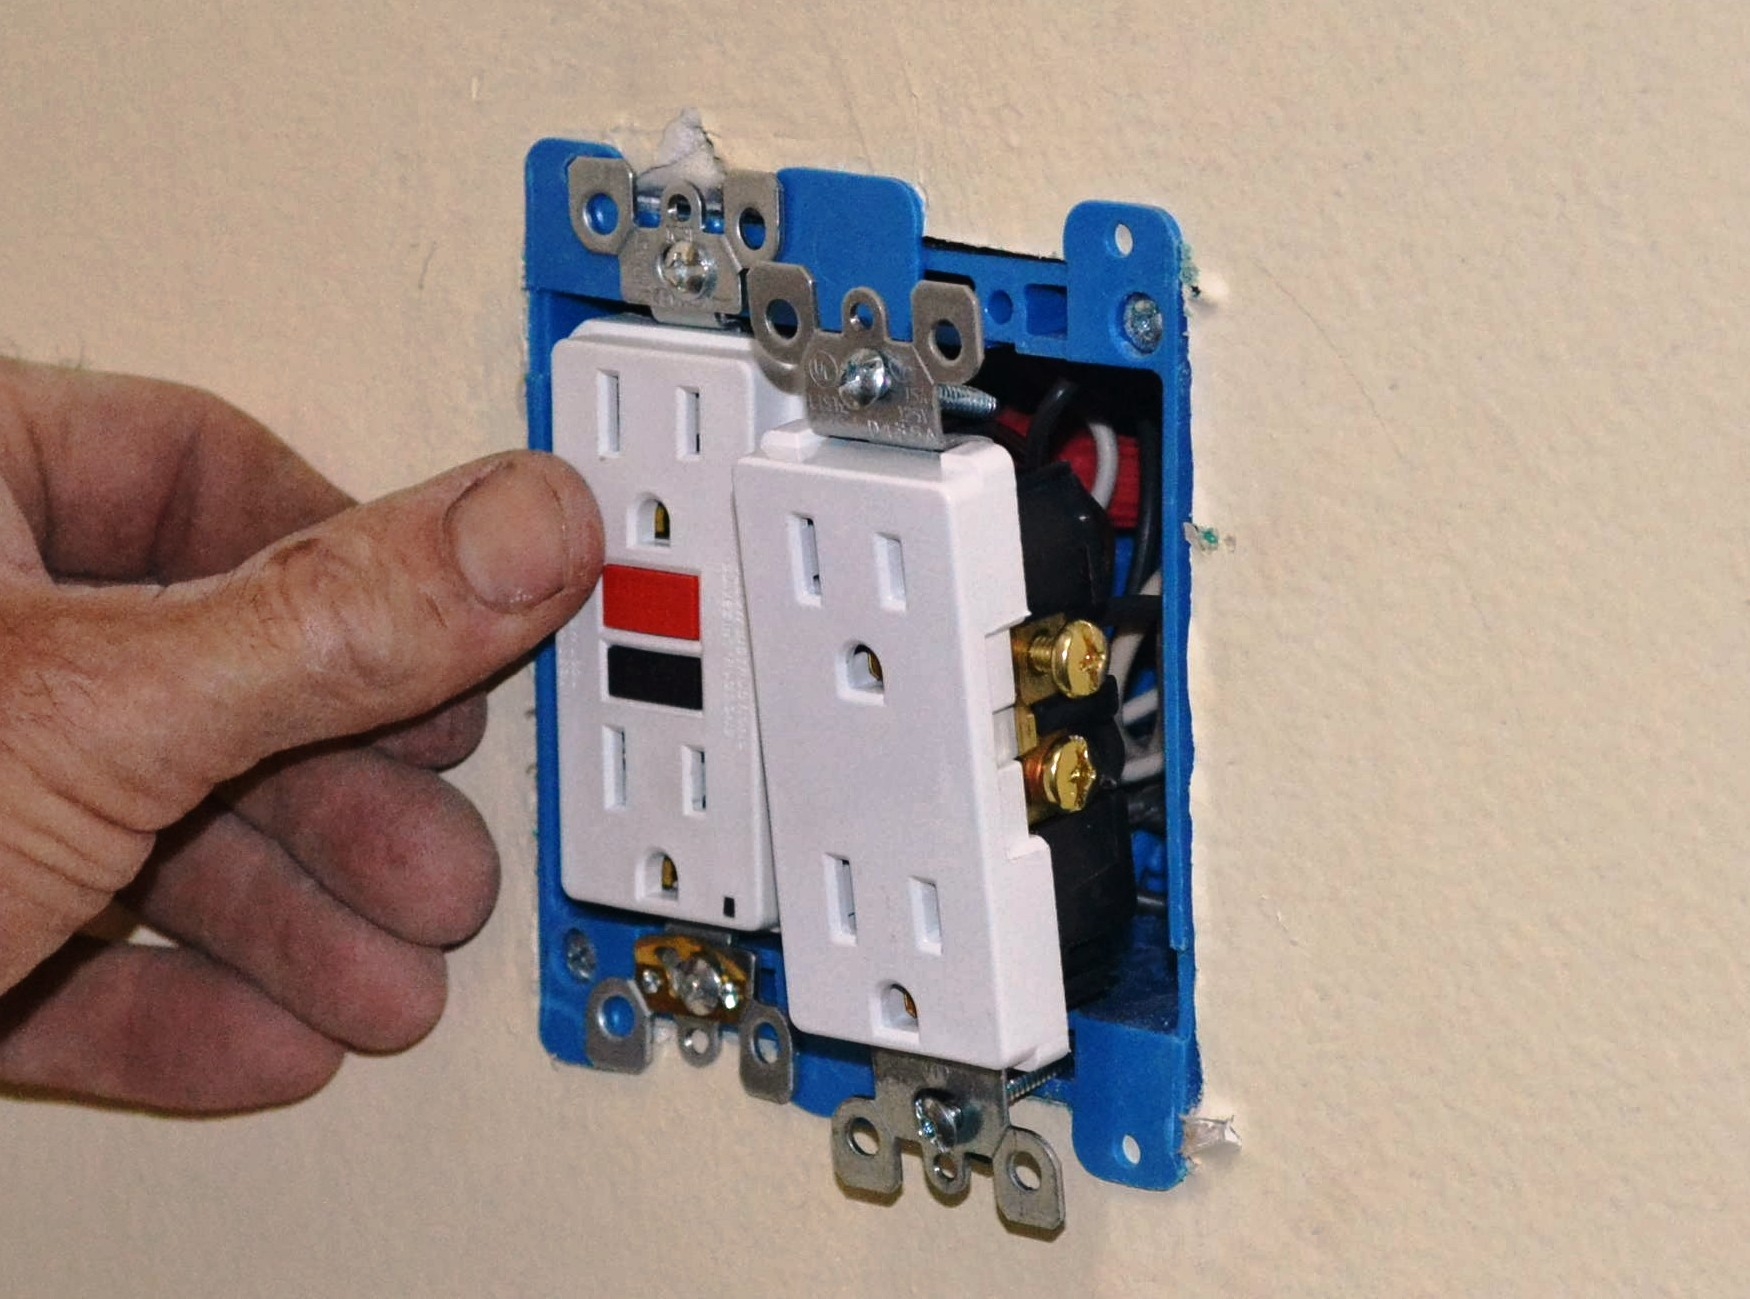 hight resolution of converting a 2 socket outlet to a 4 socket